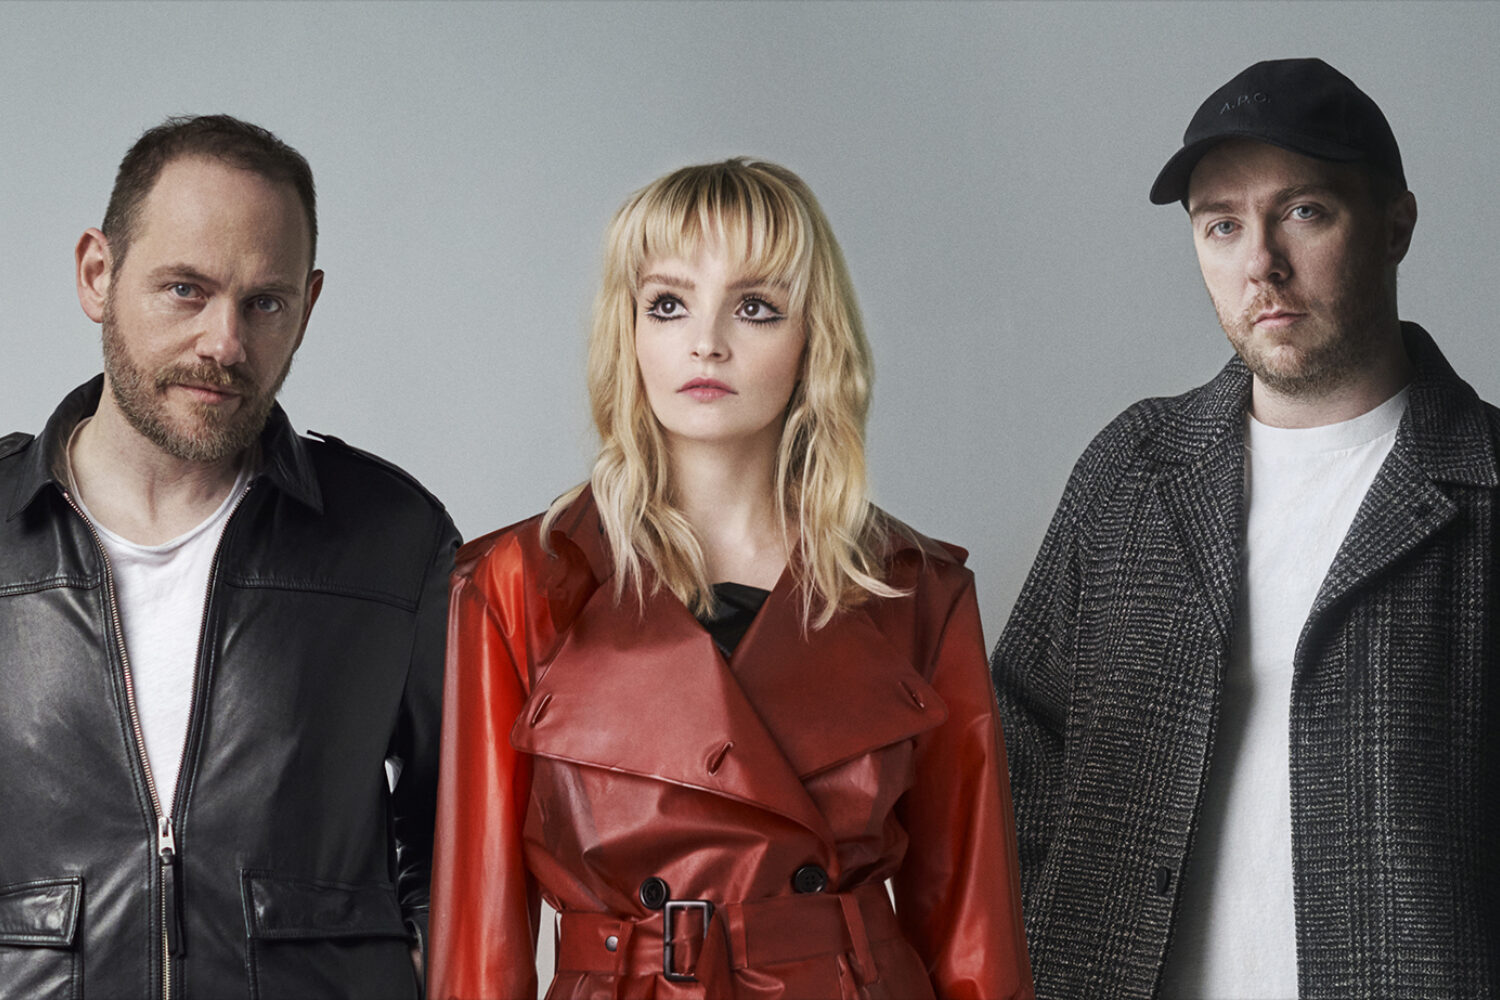 Chvrches reveal the video for 'He Said She Said'